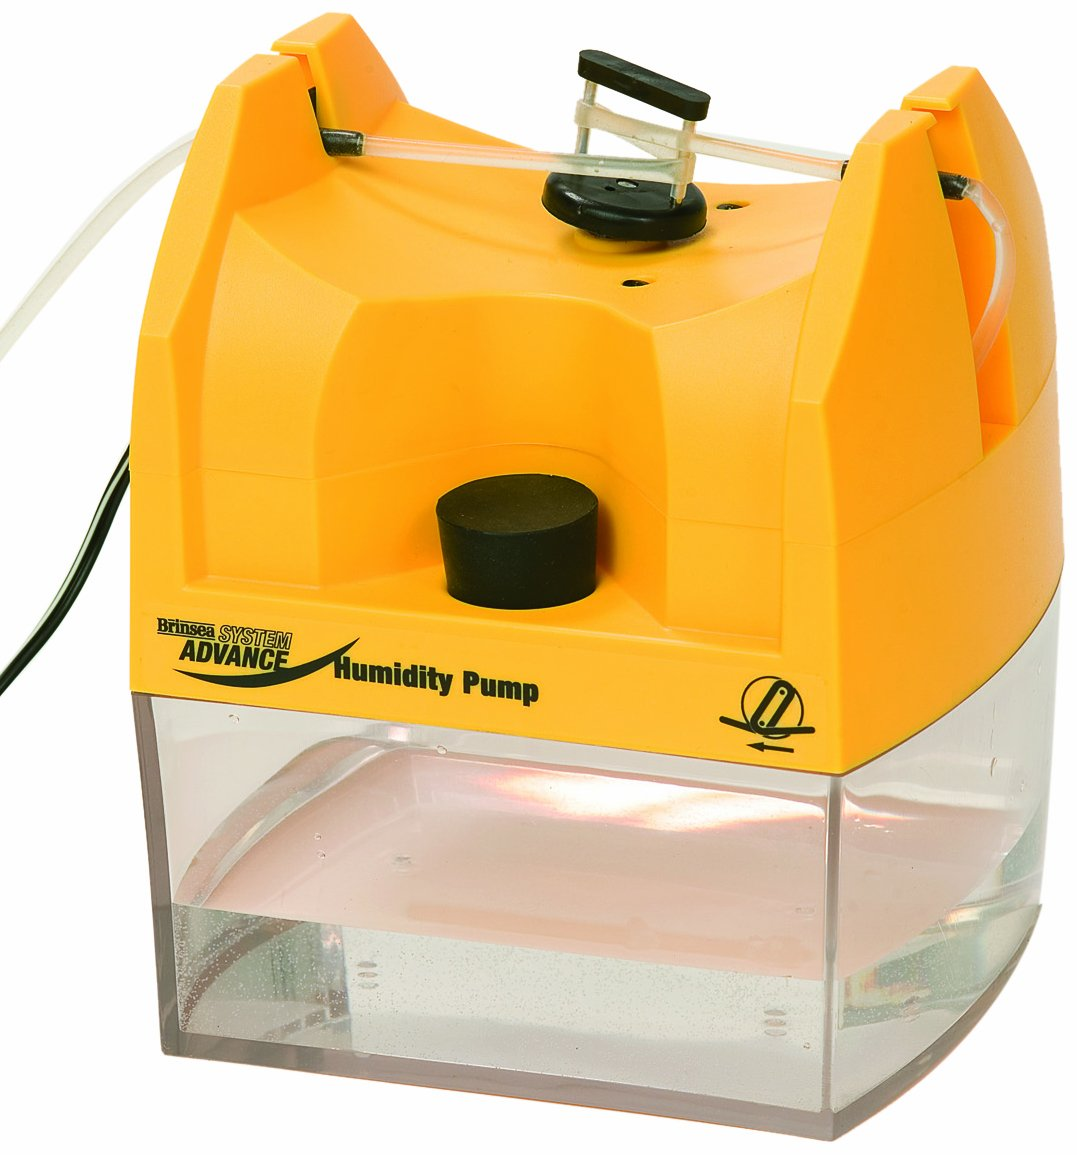 Brinsea Products Optional Humidity Pump for Fully Automatic Control with The Octagon 40 Advance Egg Incubator